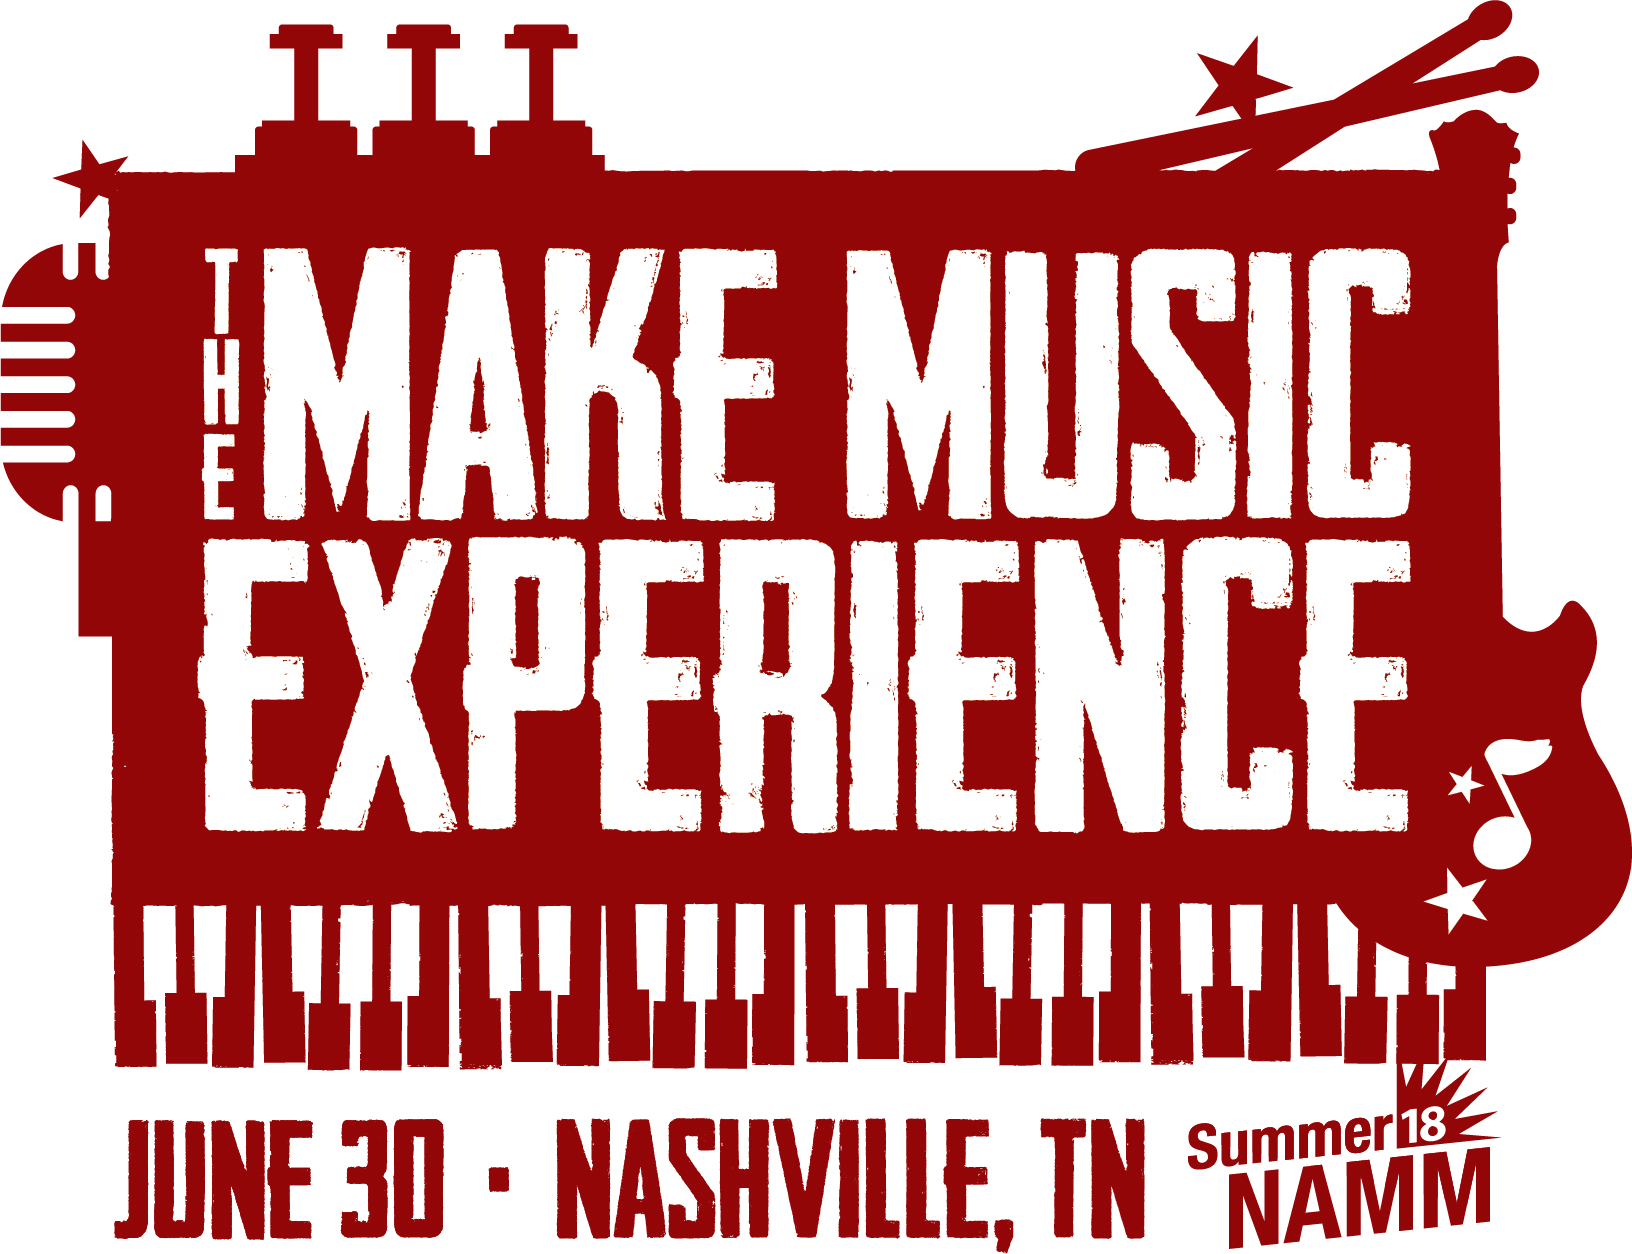 Summer NAMM The Make Music Experience presented by NAMM the